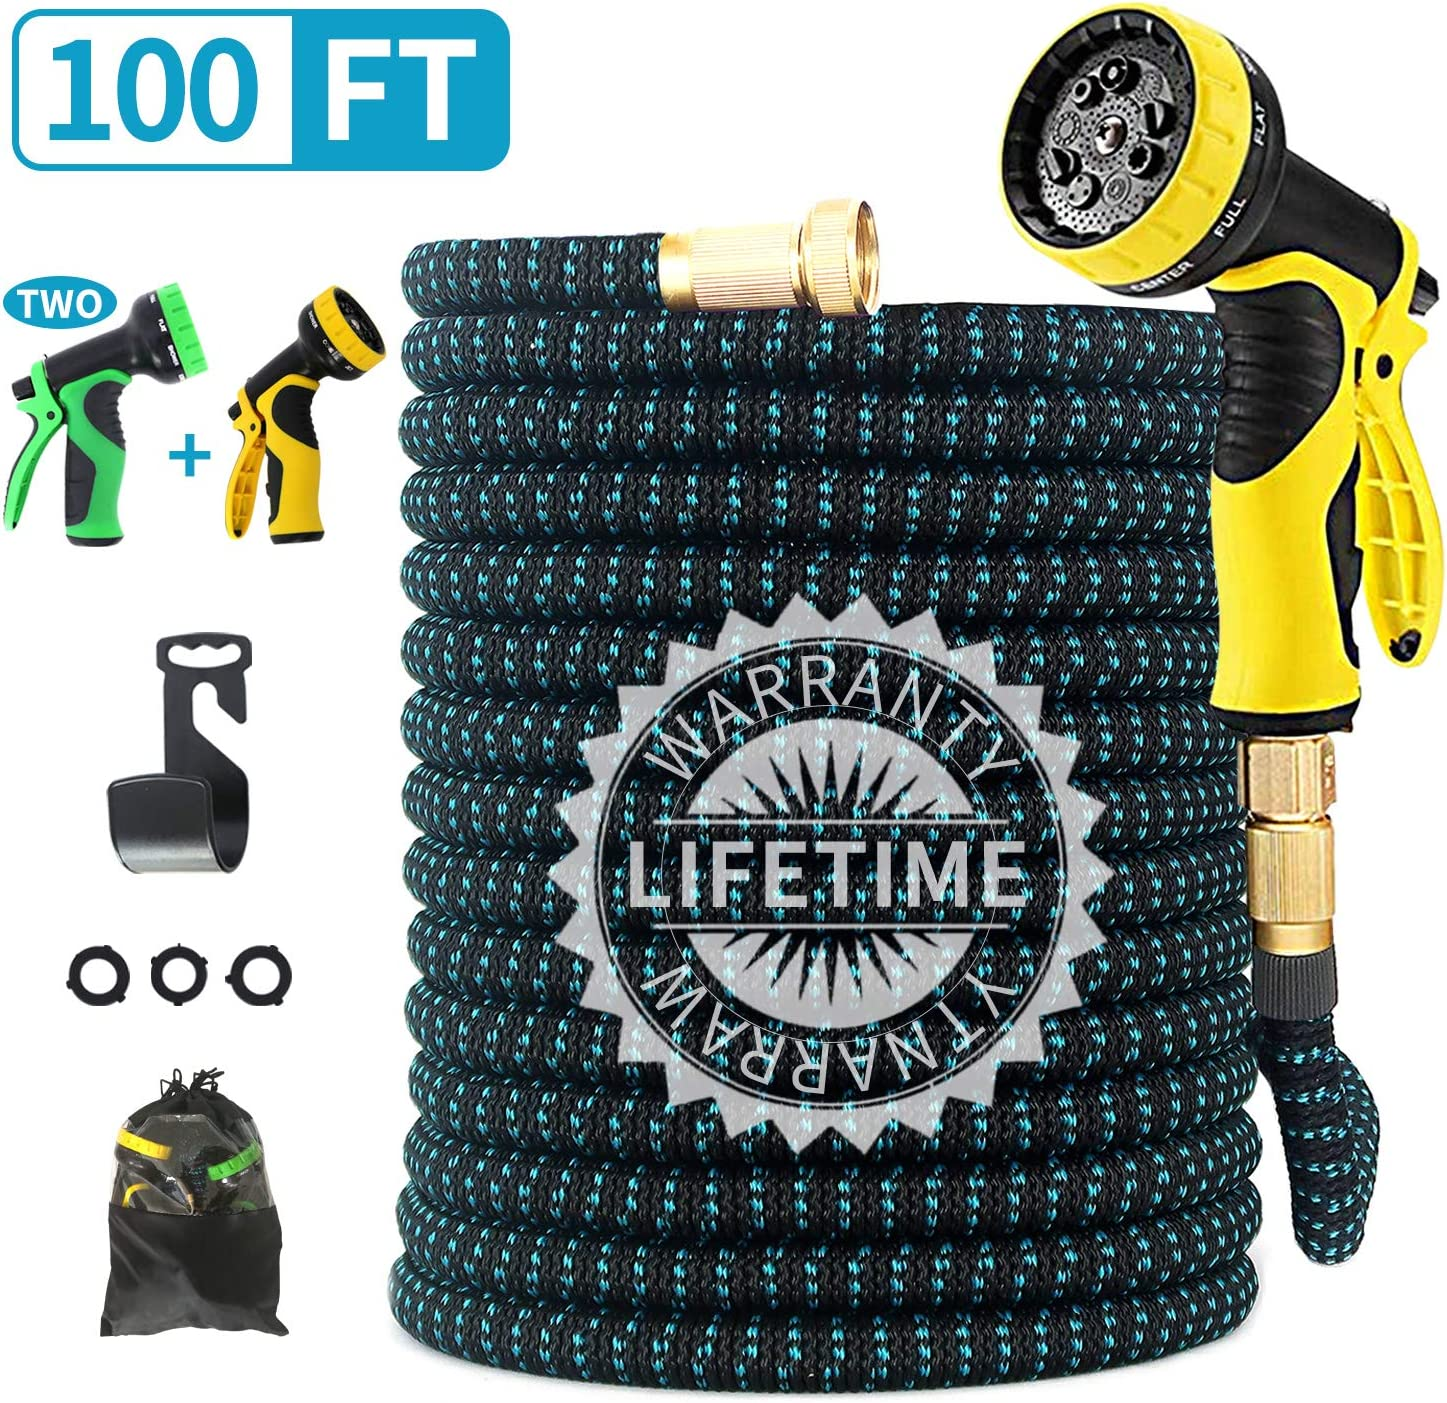 "FIENVO 100ft Upgraded Expandable Durable No-Kink Flexible Garden Water Hose Set with Extra Strength Fabric Triple Layer Latex Core,3/4"" Solid Brass Connectors 9 Function Spray Hose Nozzle"